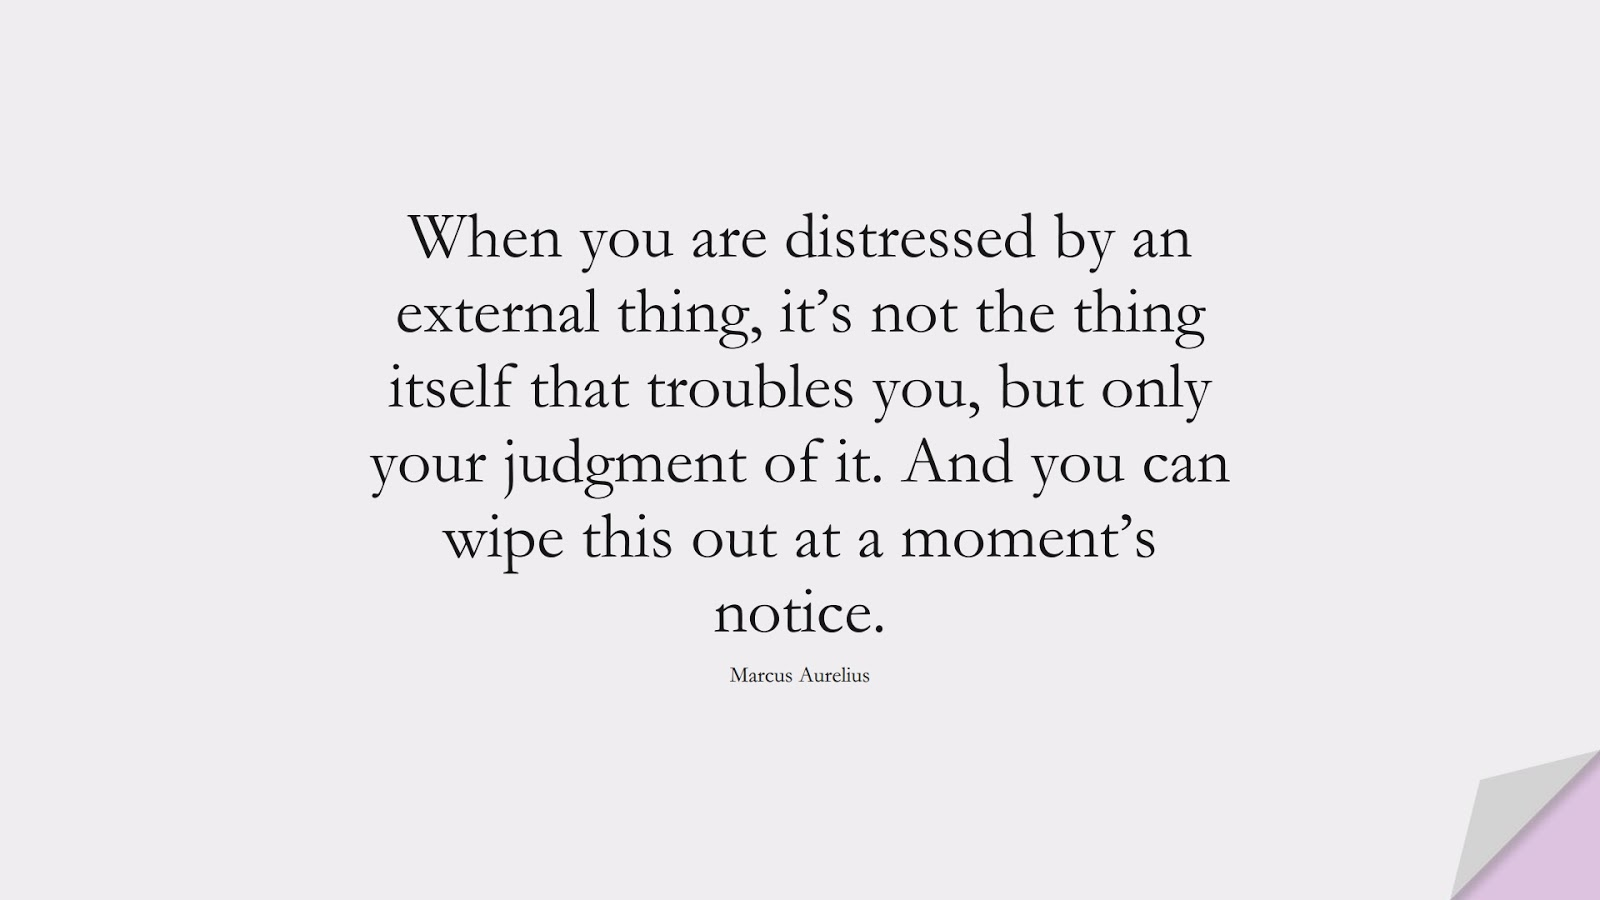 When you are distressed by an external thing, it's not the thing itself that troubles you, but only your judgment of it. And you can wipe this out at a moment's notice. (Marcus Aurelius);  #FearQuotes